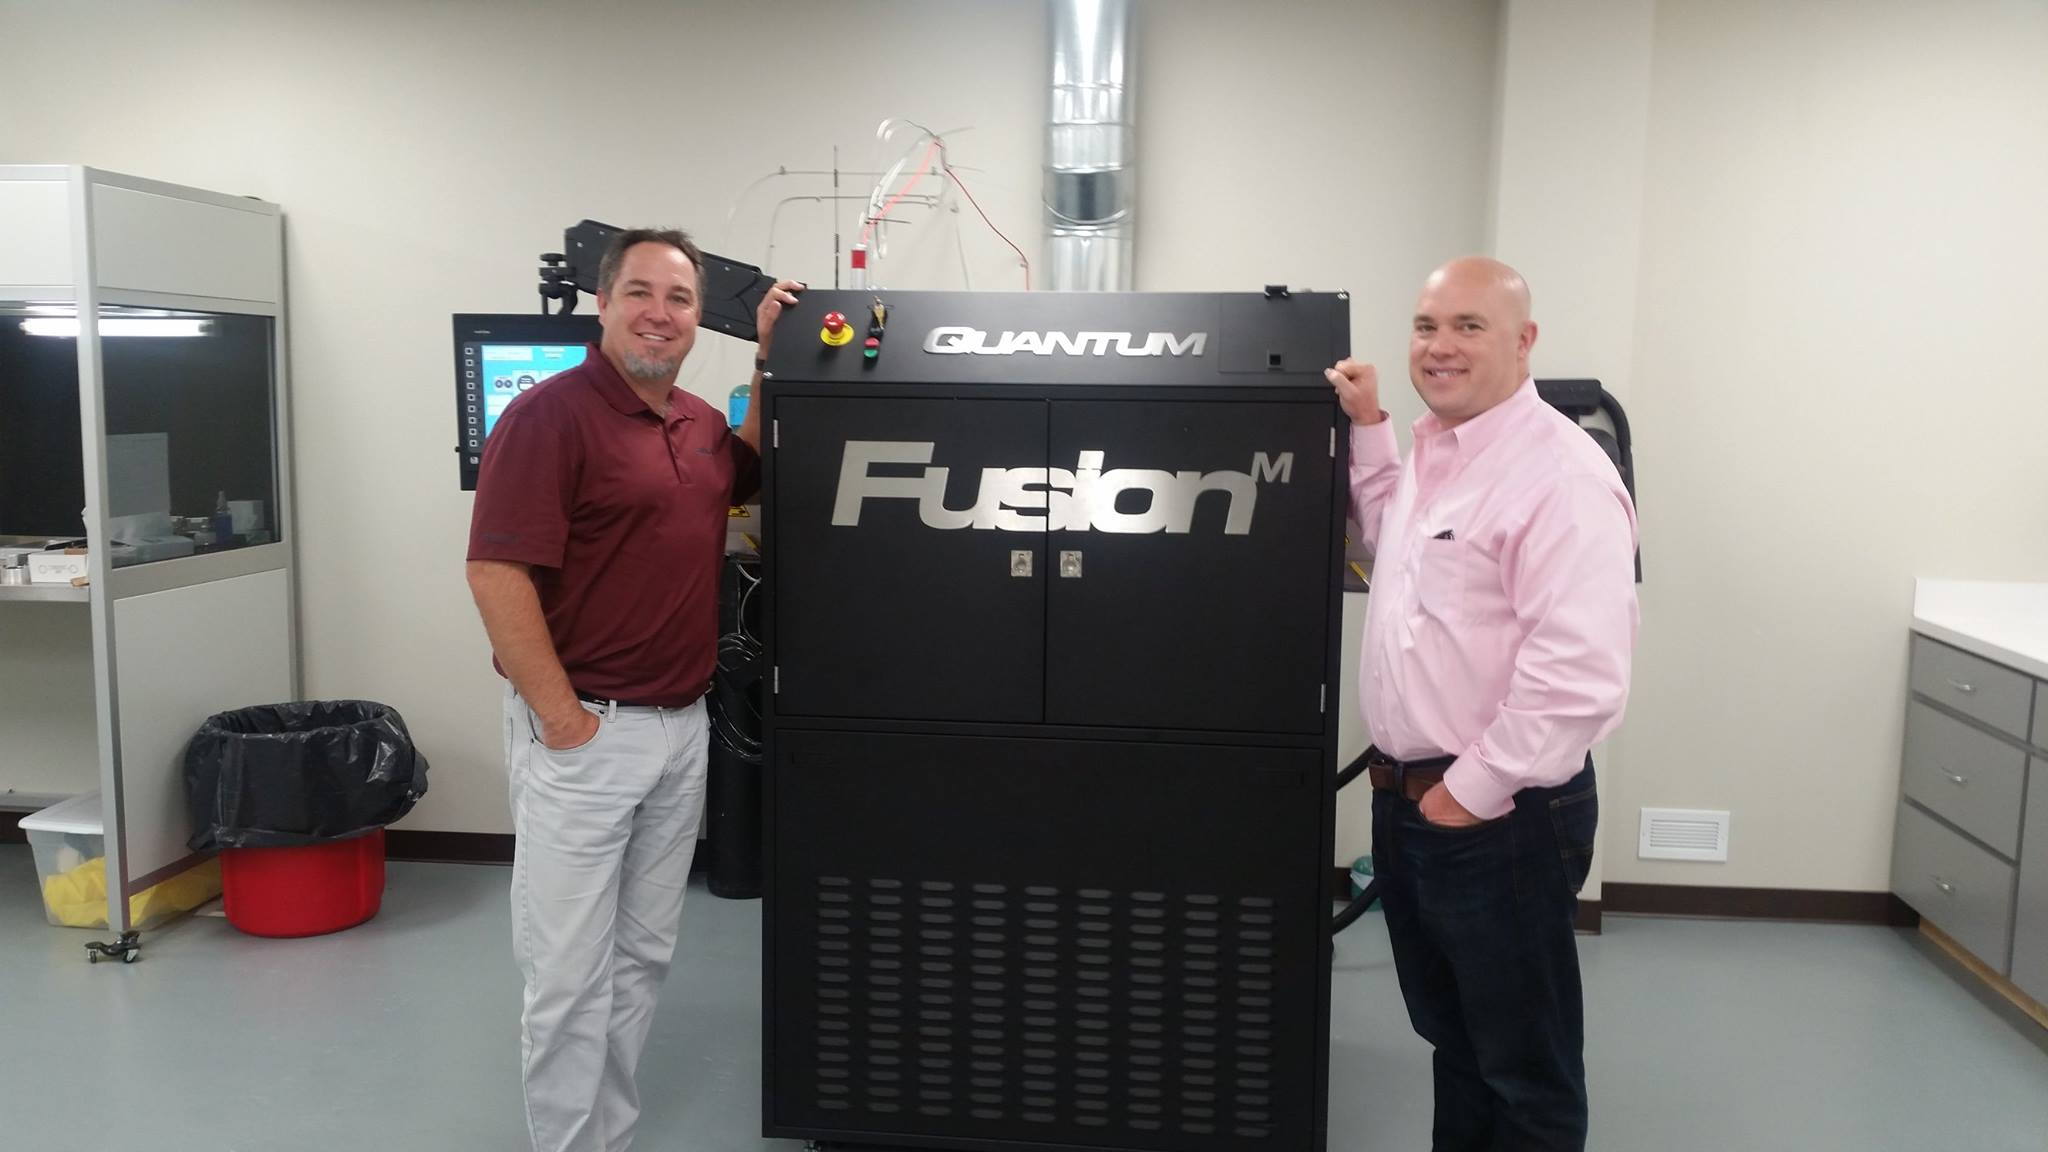 Norm Kester and Dr. Elvin Fenton with the new FusionM at 3D Optical in Texarkana, Texas. ( Quantum Innovations Facebook )